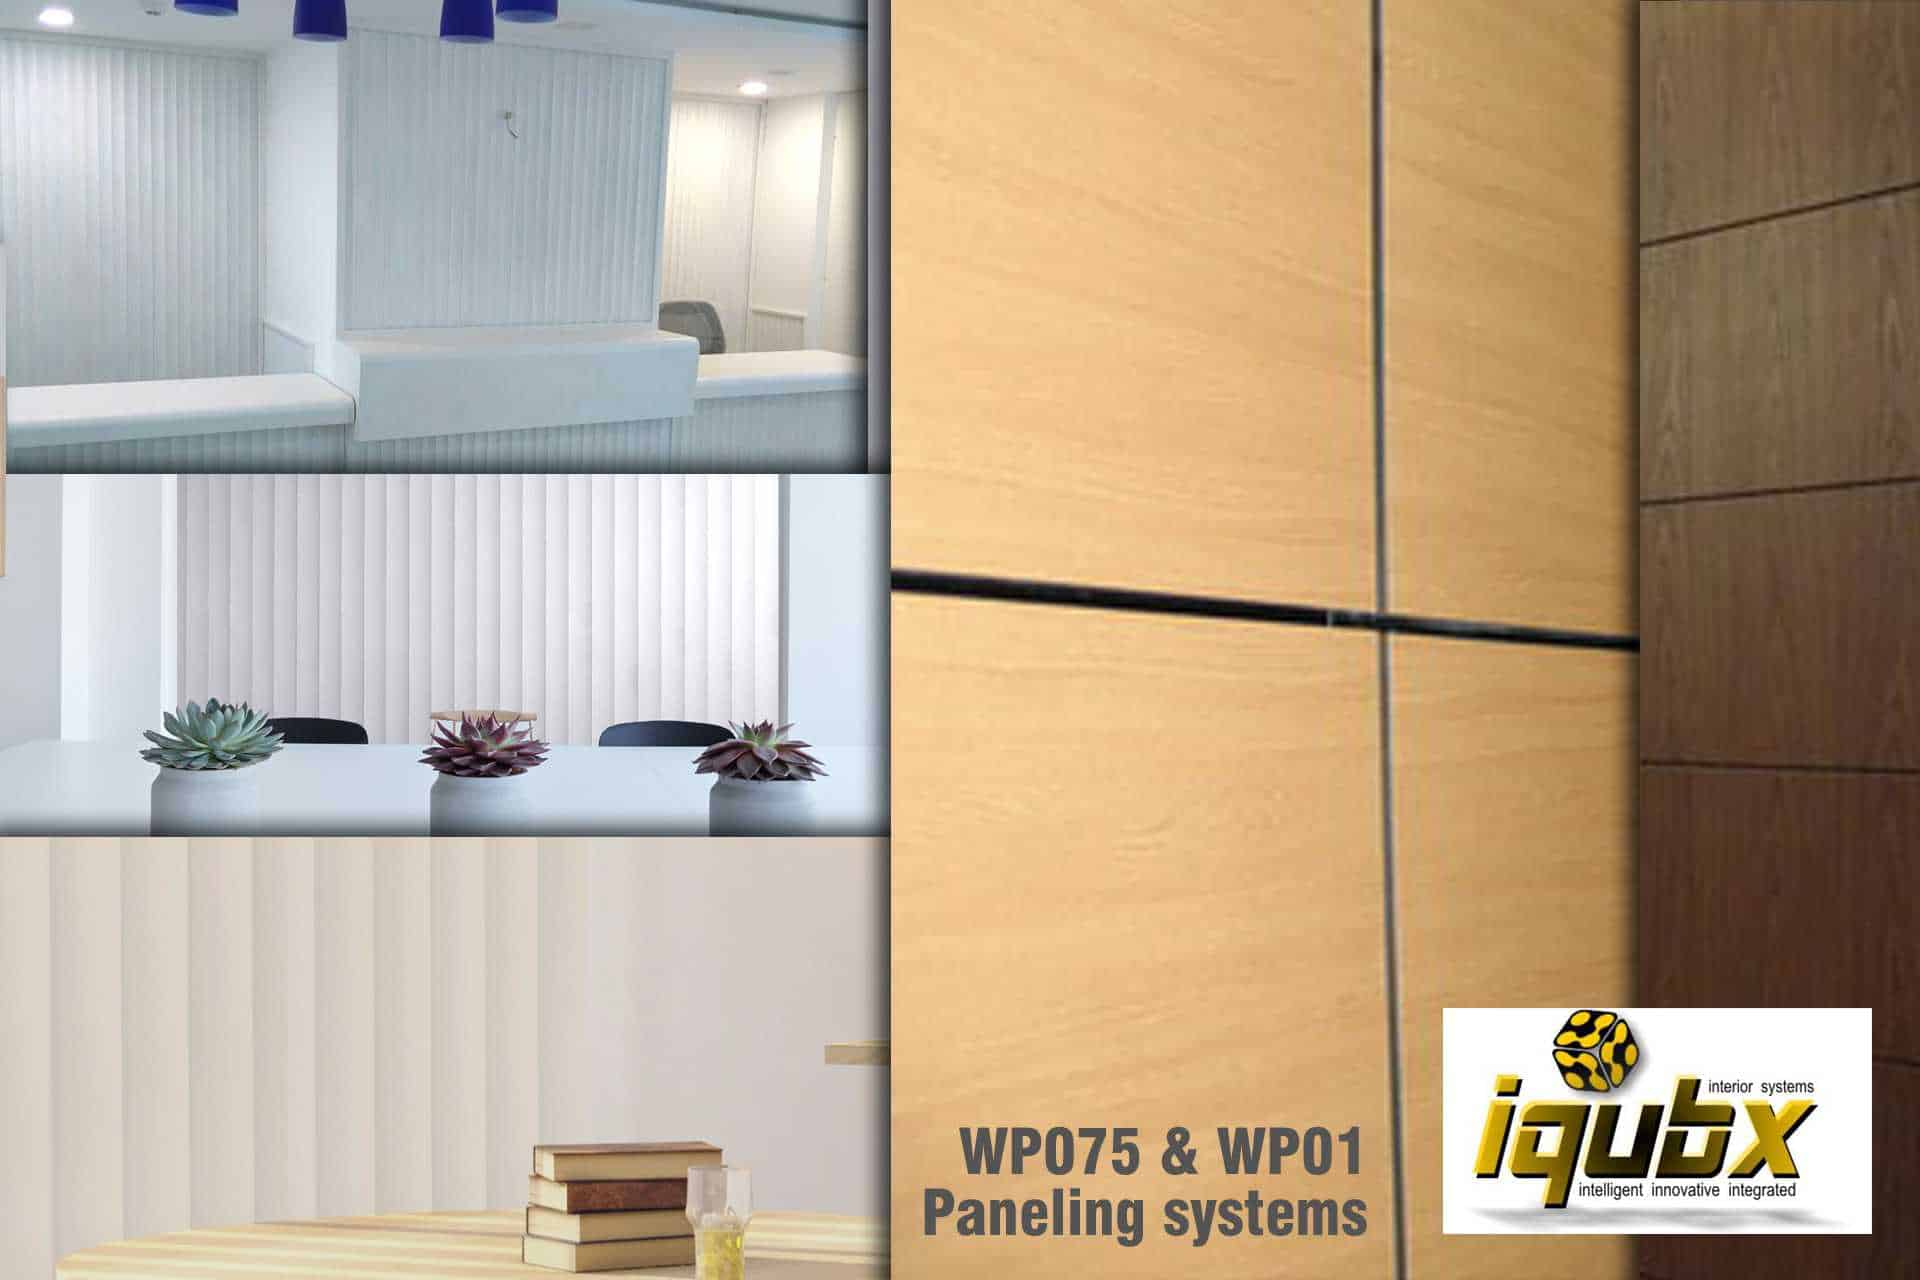 IQUBX panelling and partition systems are versatile and can take various finishes